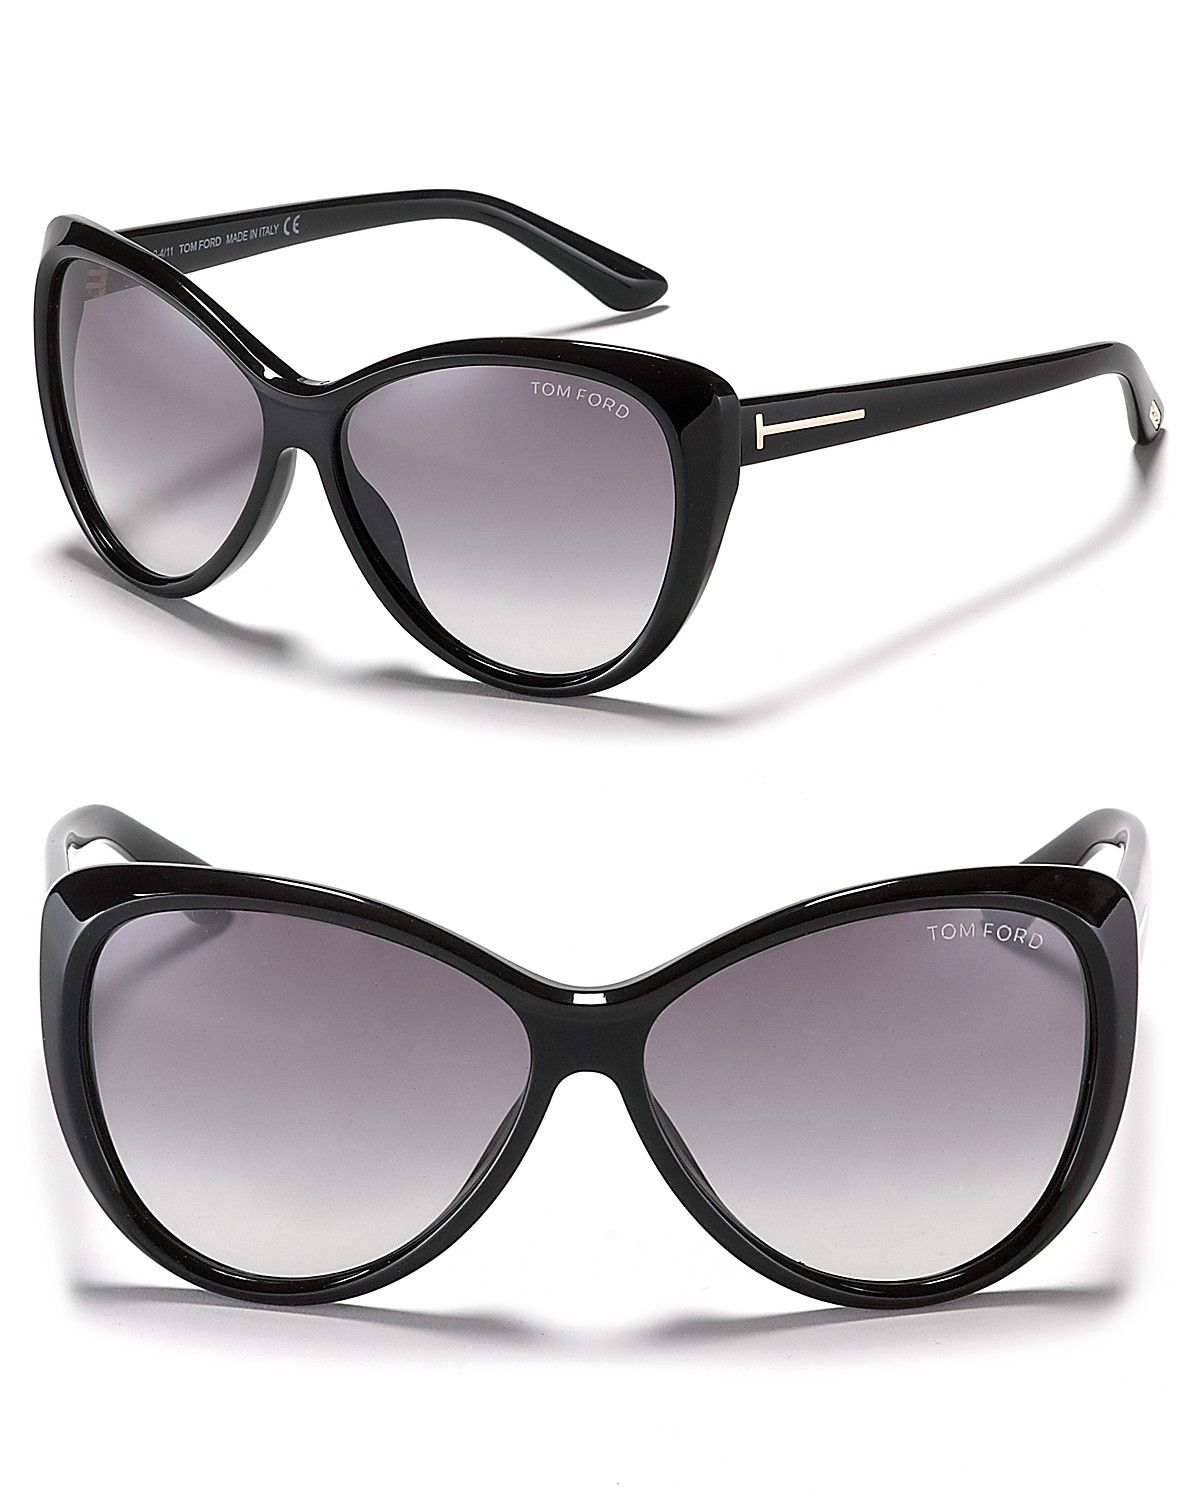 46da379f4a84 Tom Ford Malin Sunglasses. Guess these will be my next pair of tom fords.